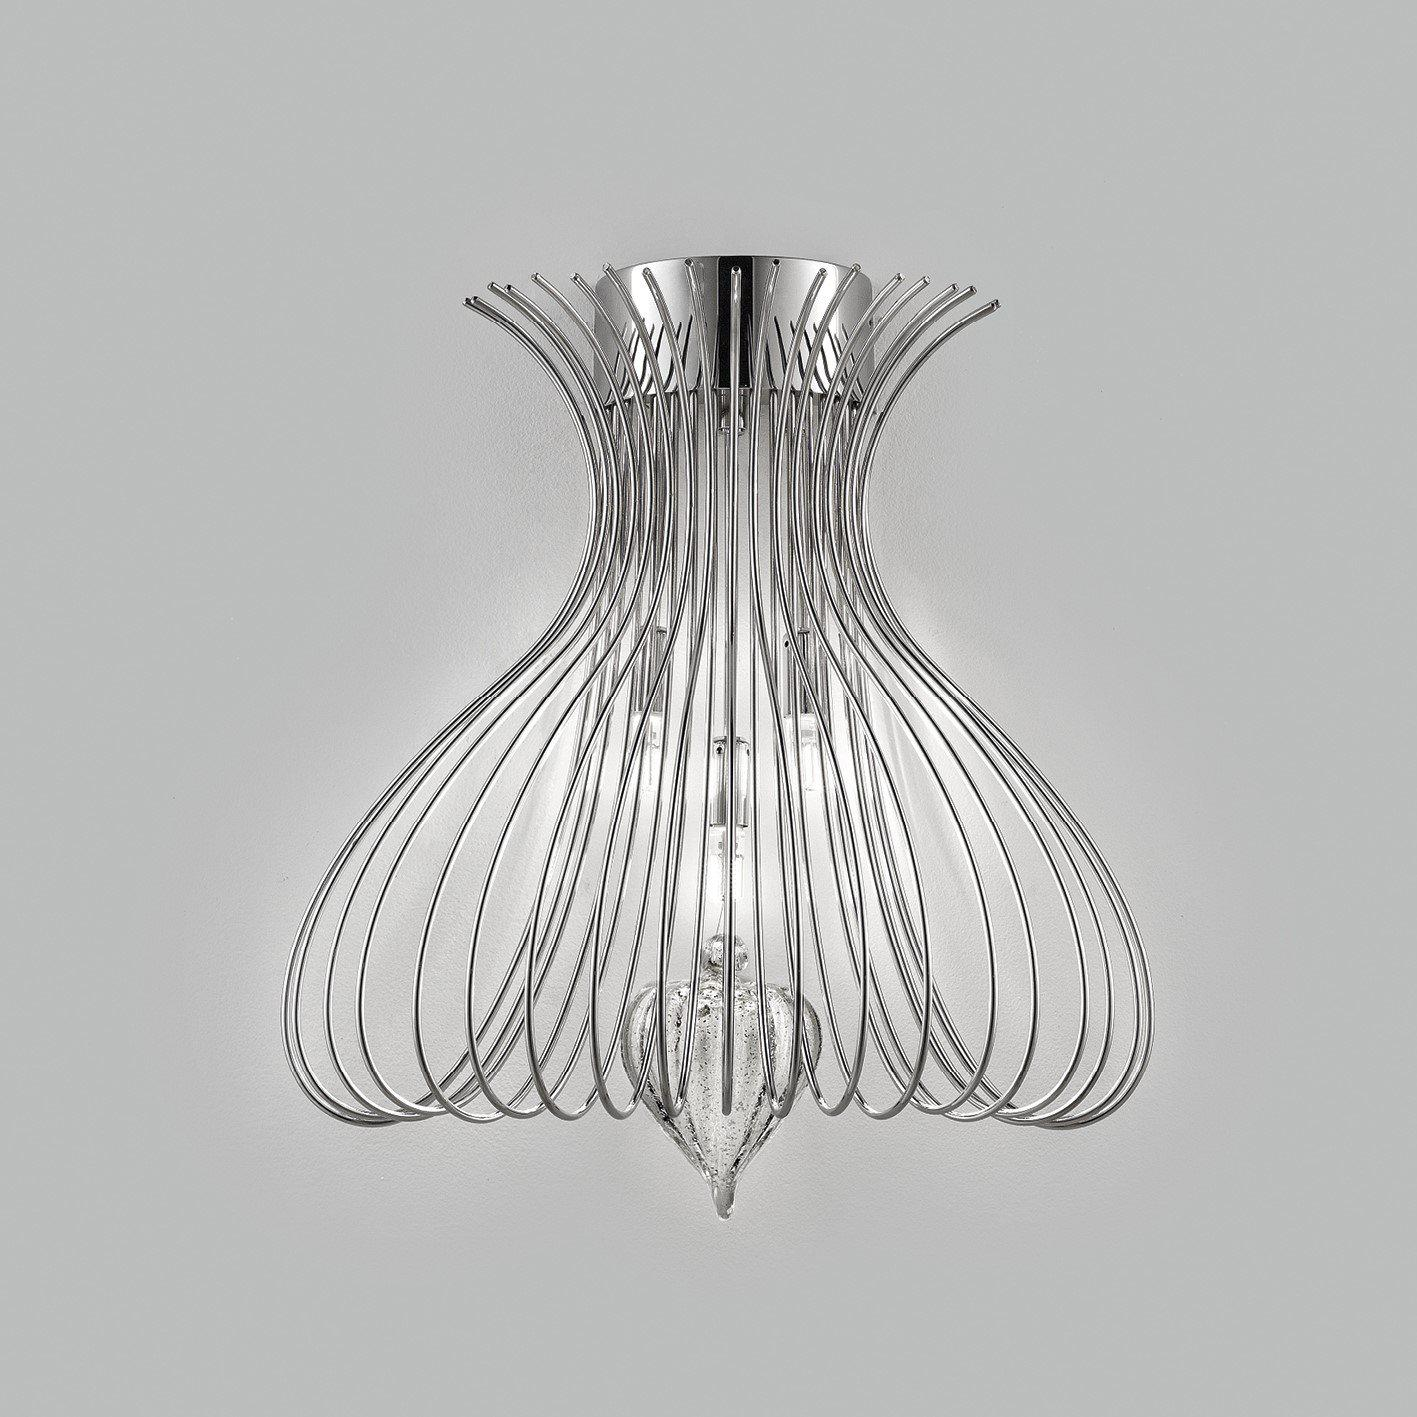 Contemporary Vortex Design Open End Wire Crafted Metal Side Wall Light 40cmL x 30cmH with 3 Lamps-Chrome-Distinct Designs (London) Ltd